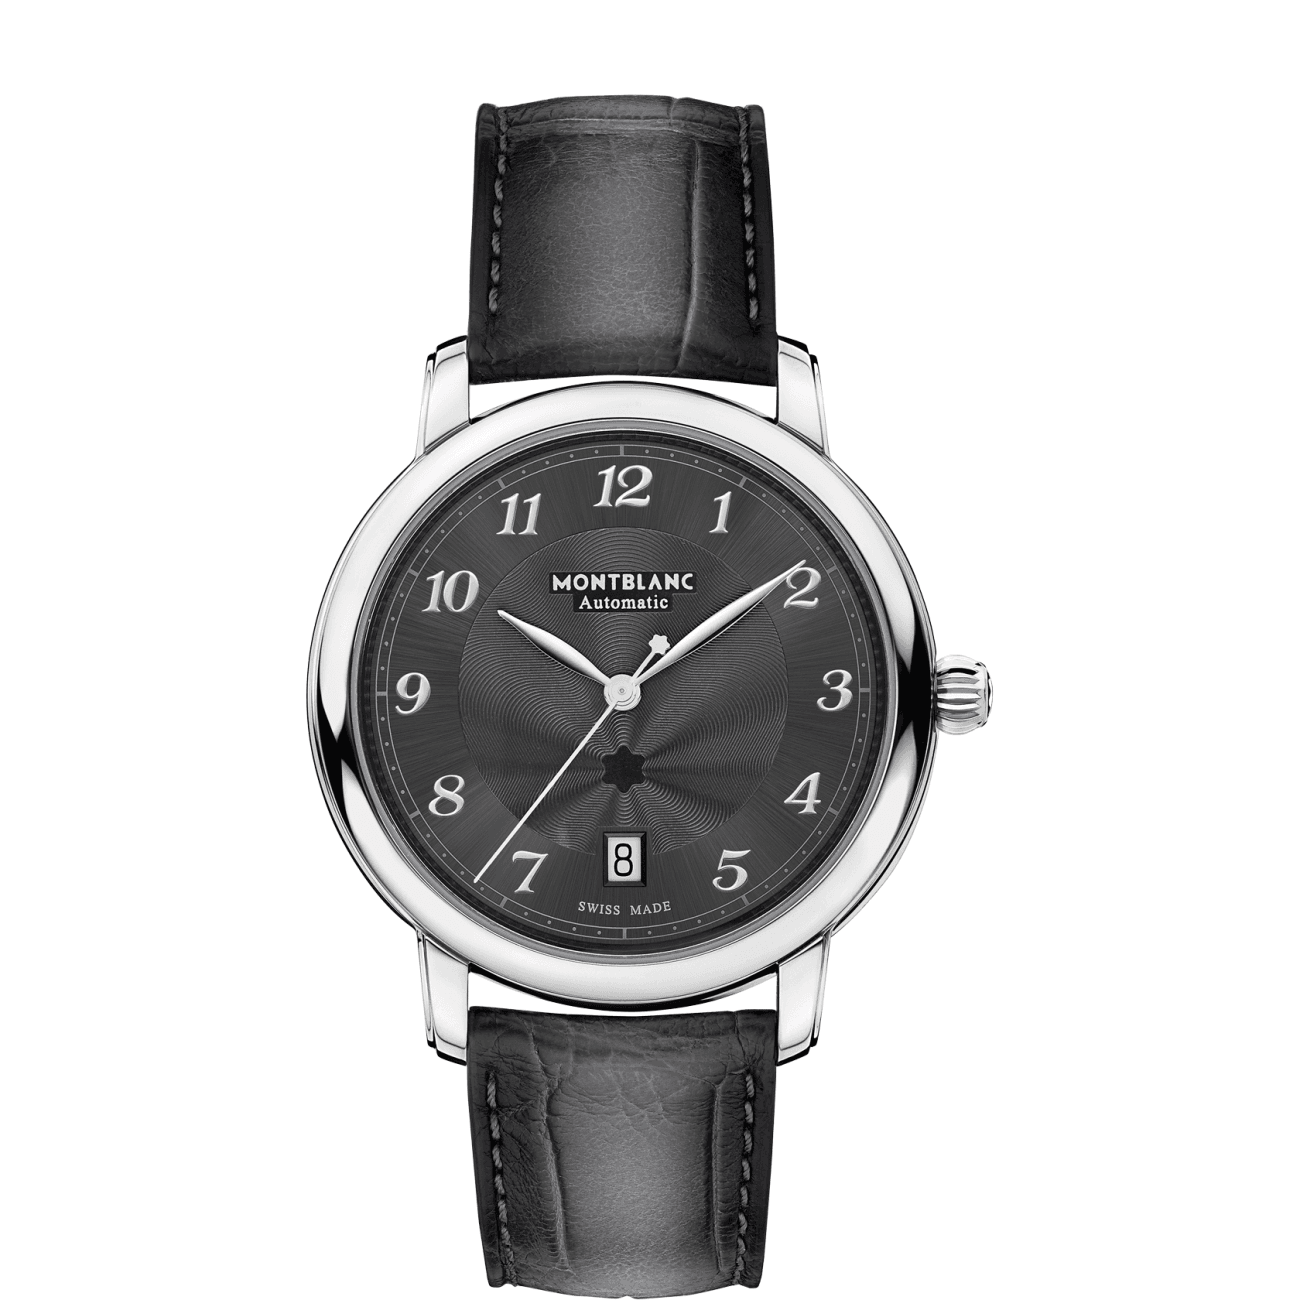 Montblanc Watches - Montblanc 118517 | Manfredi Jewels